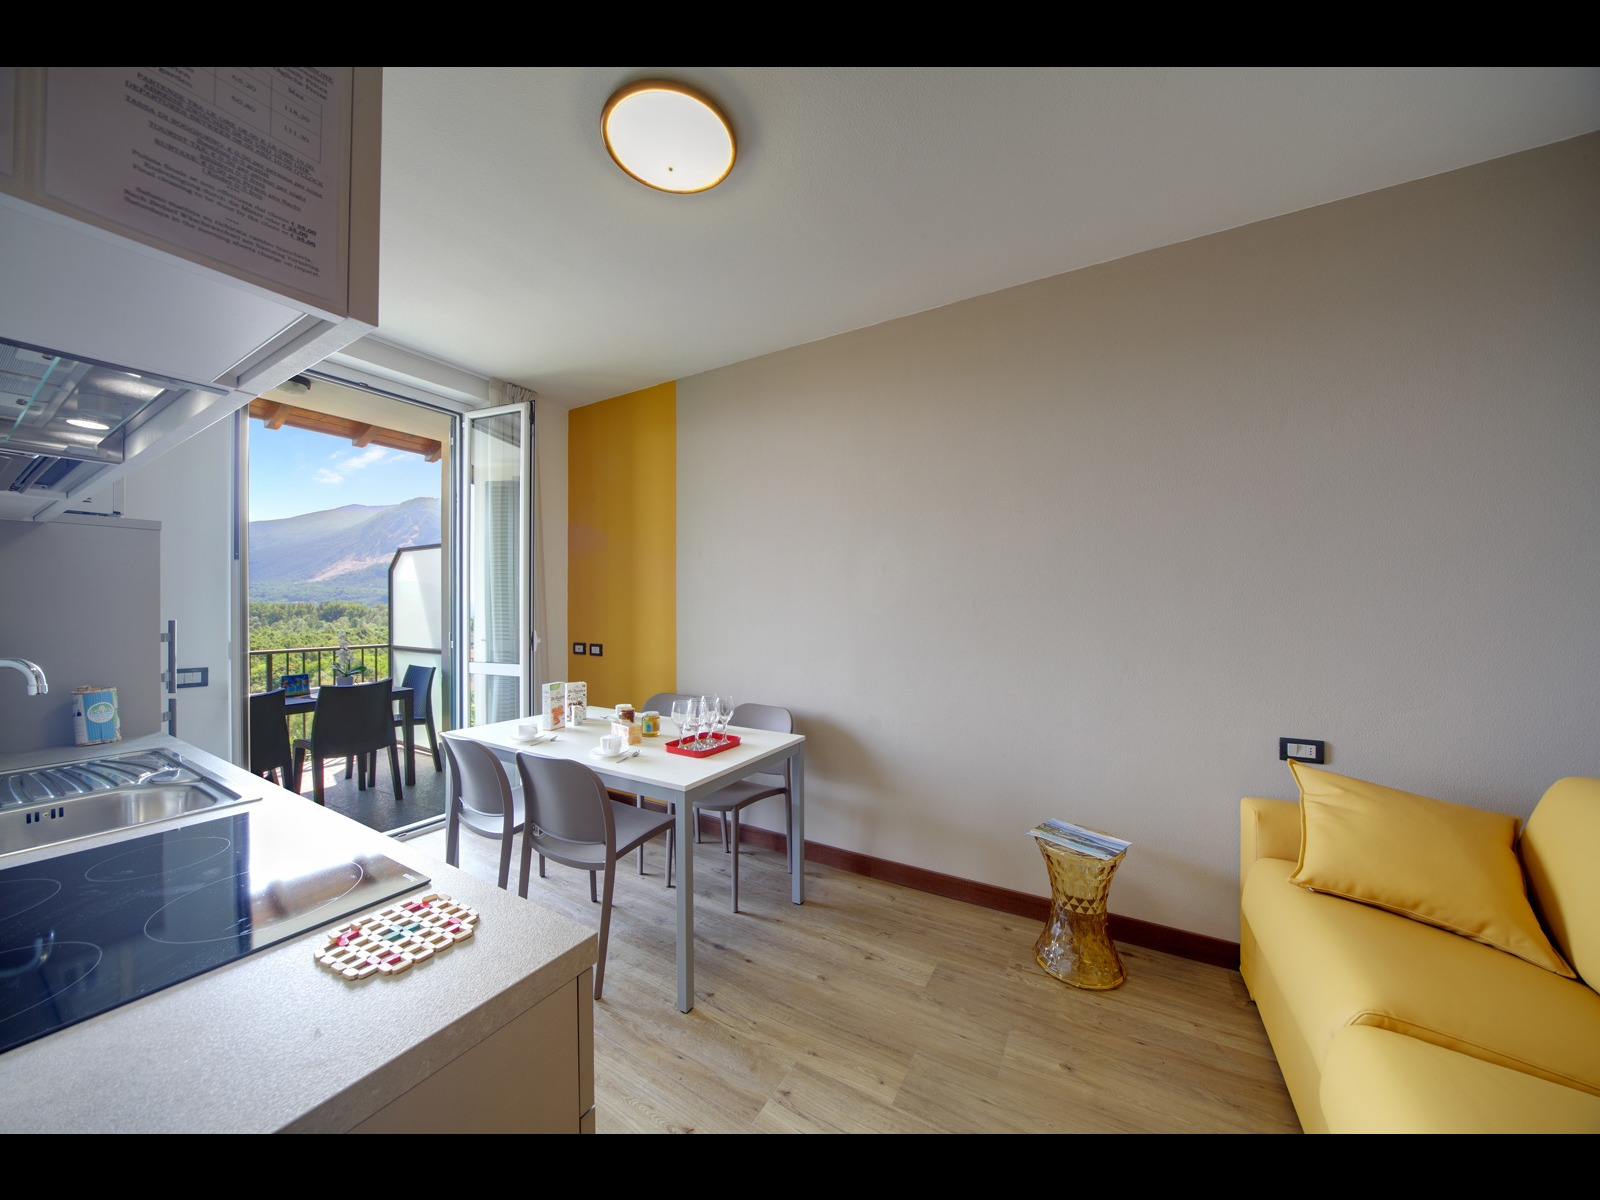 TWO-ROOM APARTMENT 33 M² WITH LAKE VIEW